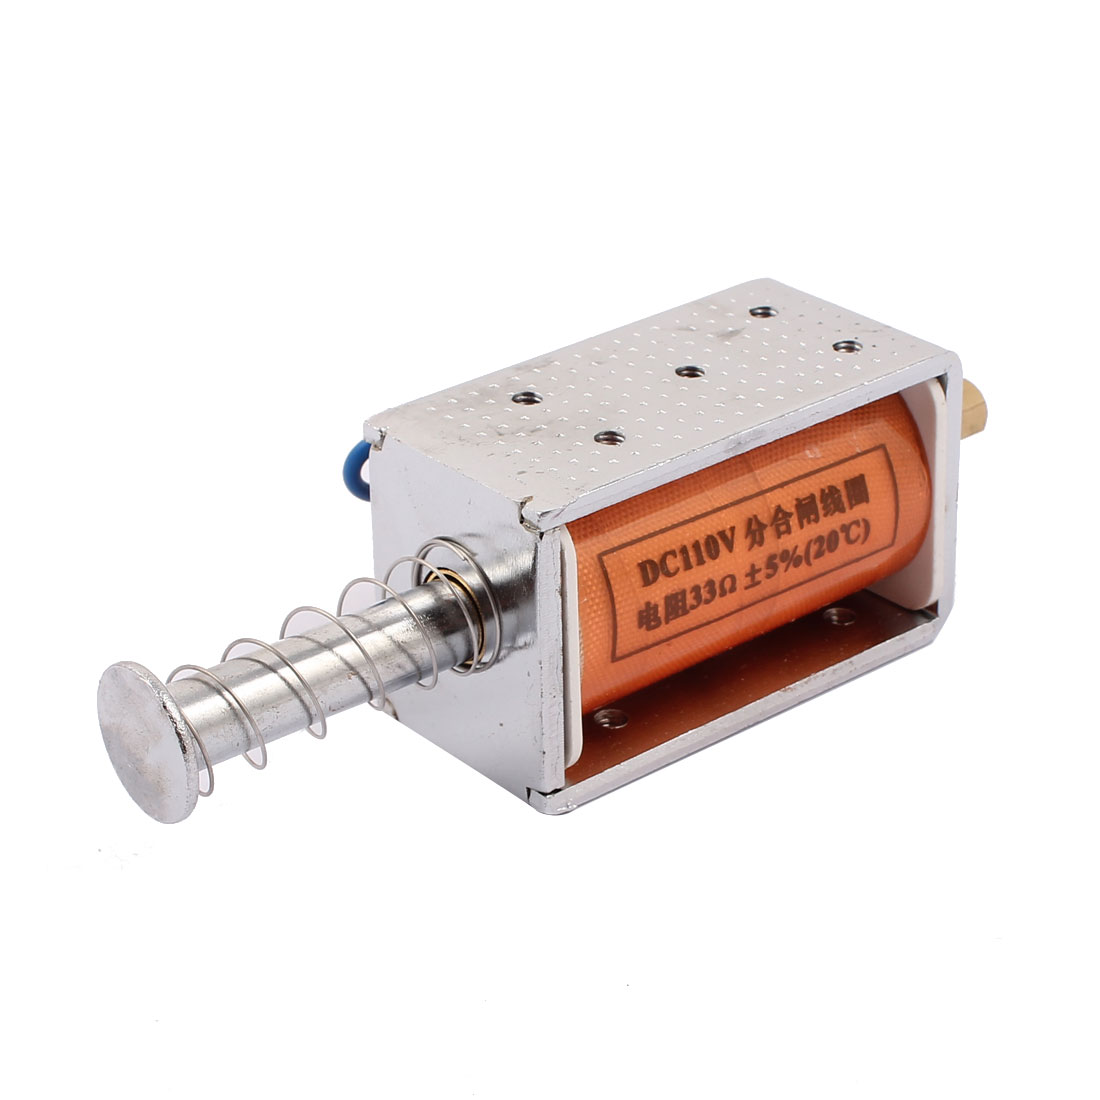 DC 110V 70N Open Frame Push Pull Type Solenoid Electromagnet Actuator